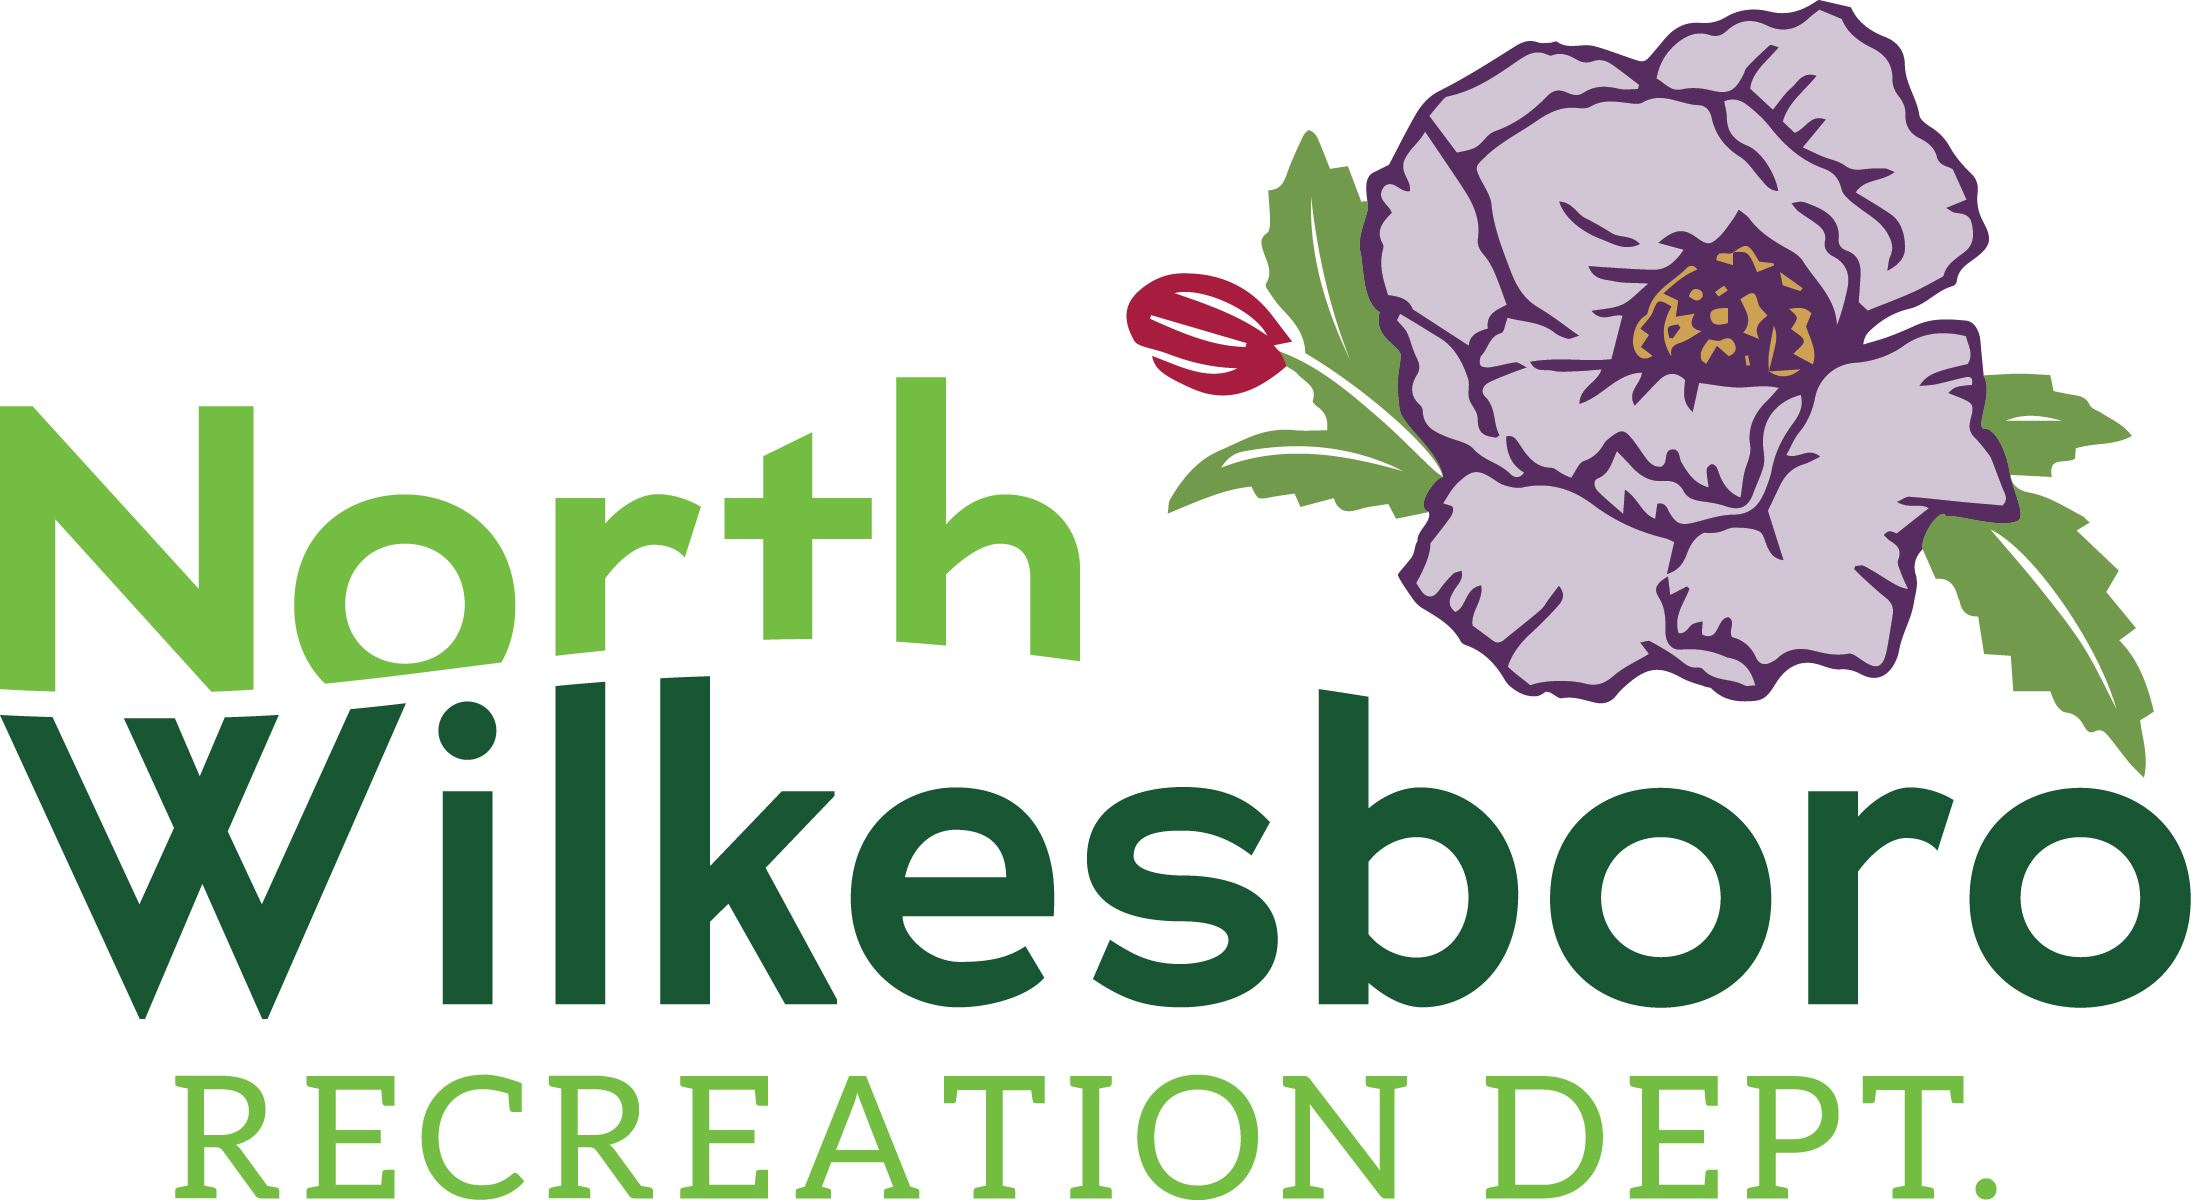 North Wilkesboro-Recreation Department icon